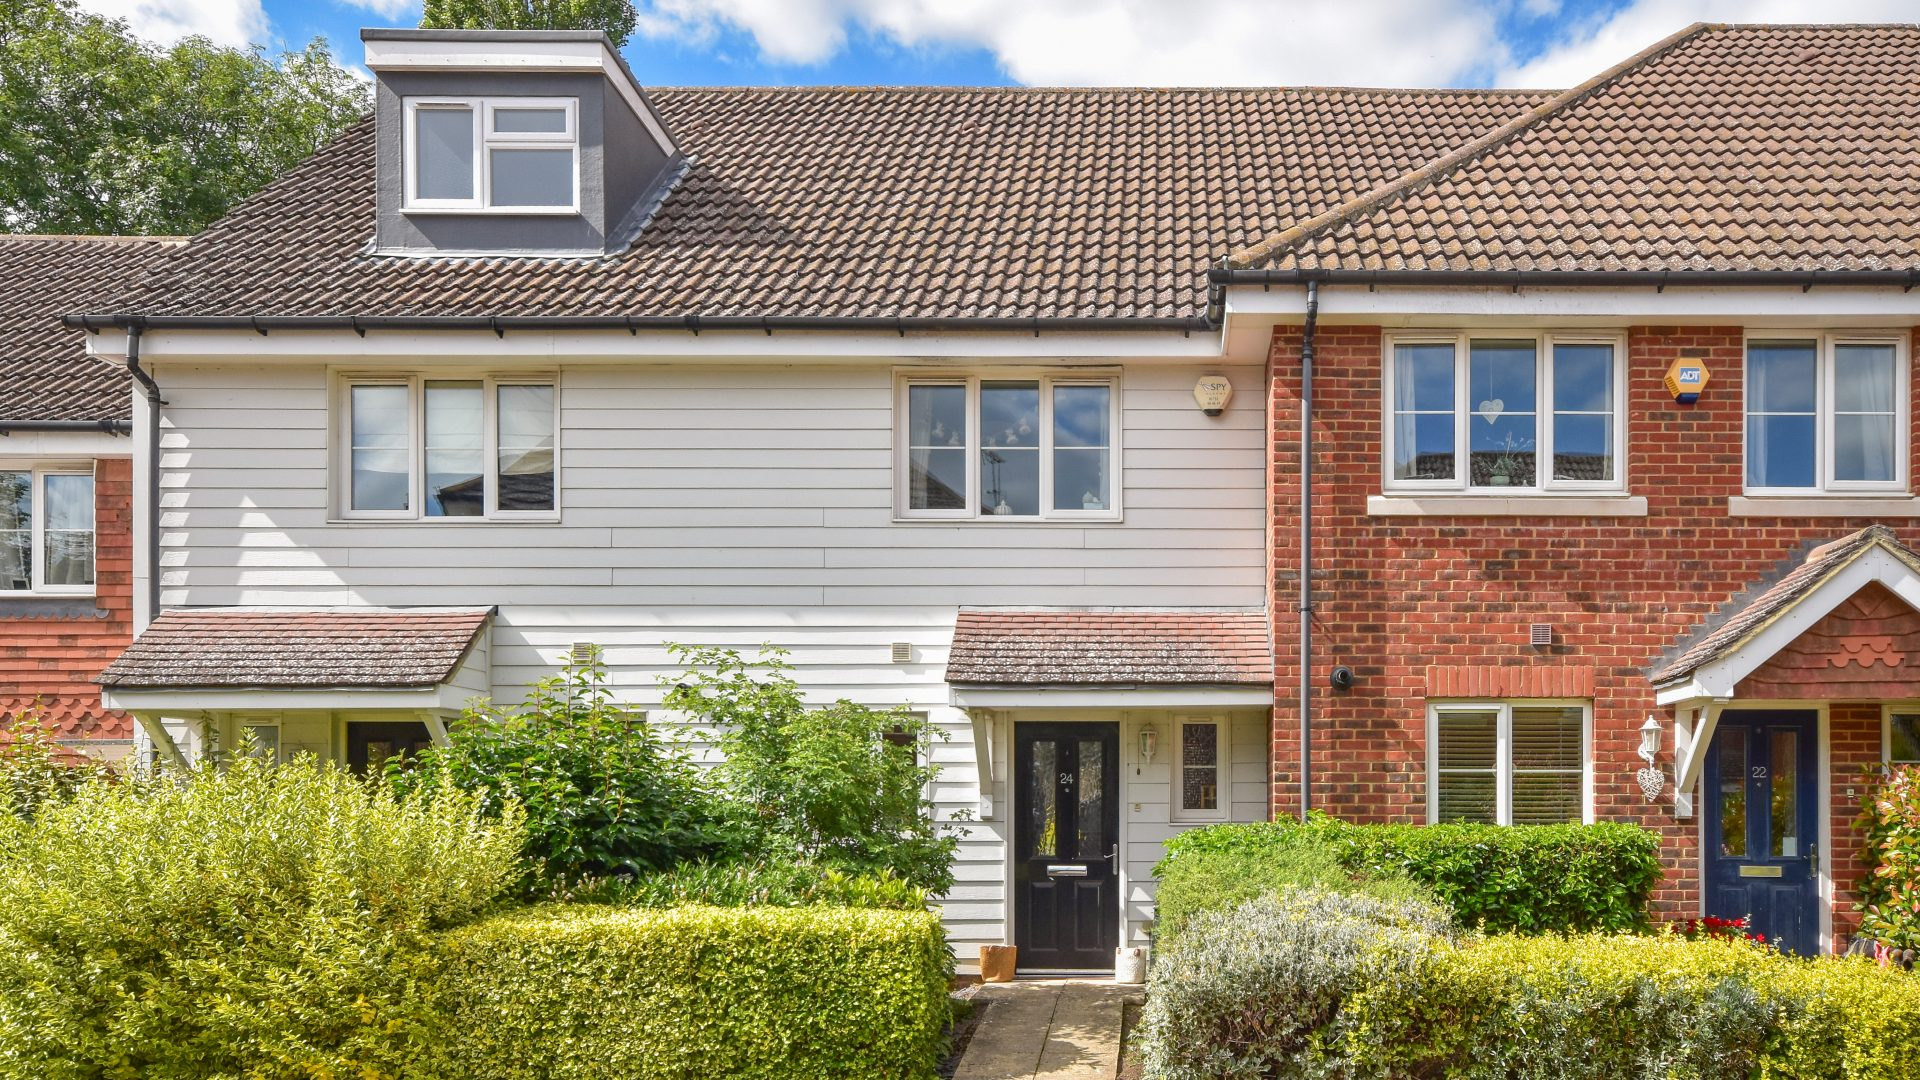 Albion Way, Edenbridge for sale with Mr and Mrs Clarke estate agent